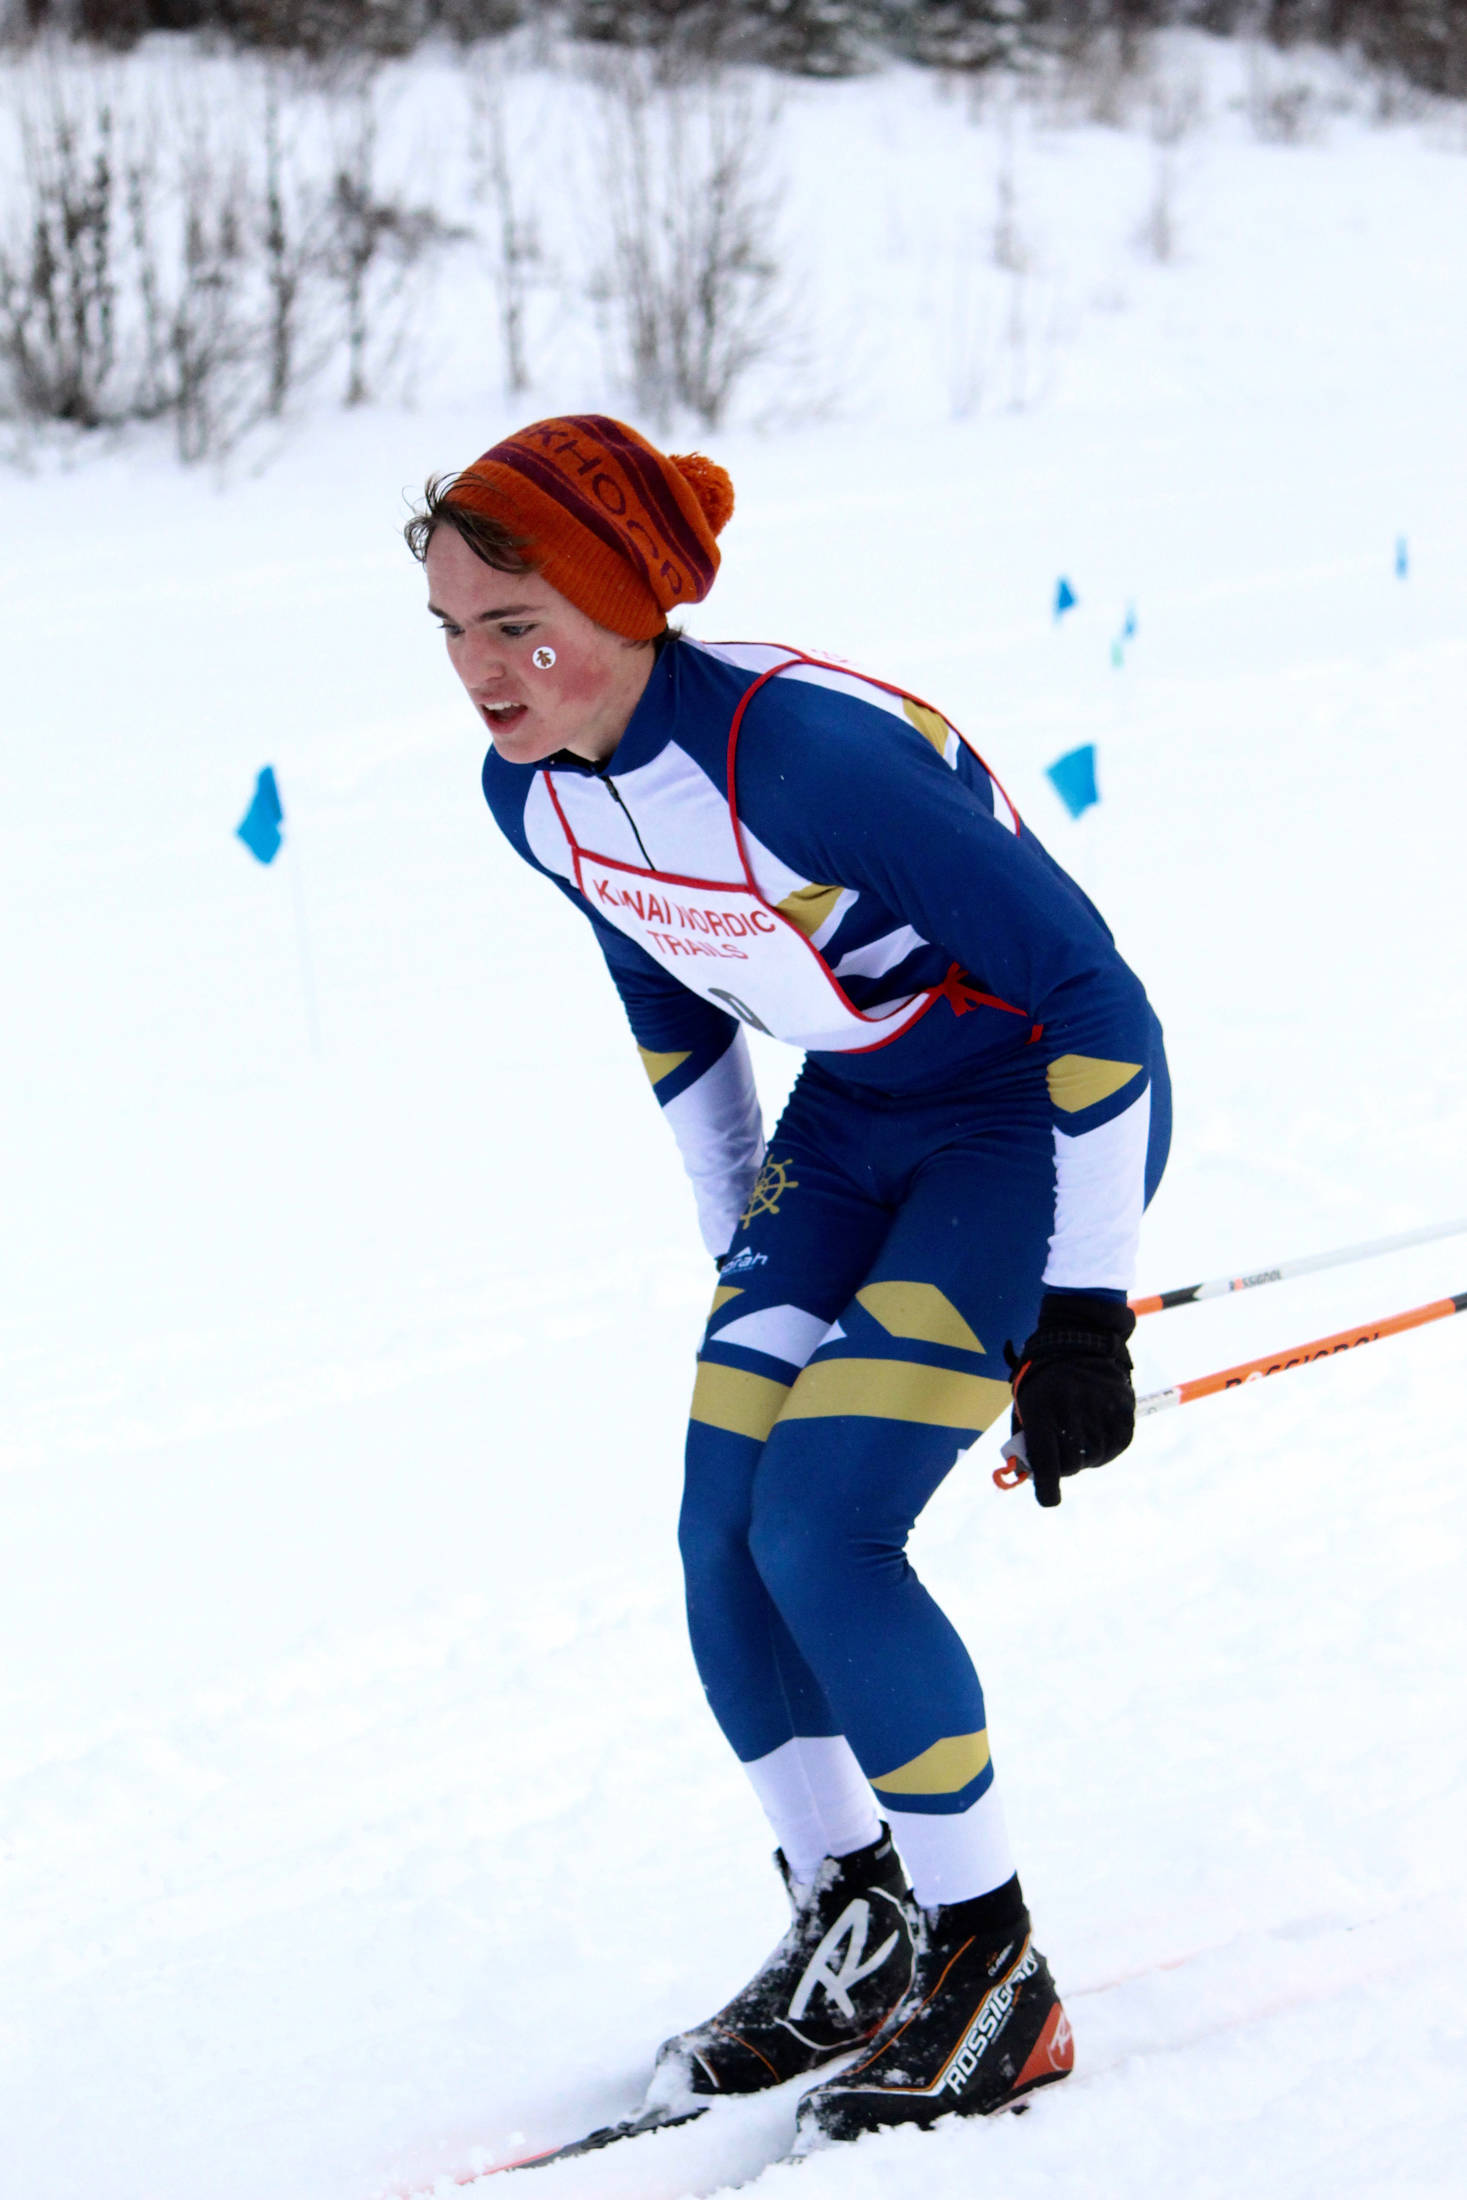 Homer's Denver Waclawski traverses a course at Tsalteshi Trails during the Tsalteshi Classic Invitational on Tuesday, Dec. 5, 2017 in Soldotna, Alaska. Five of Homer's 10 skiers were awarded ribbons during the impromptu meet. (Photo by Jessie Fabich)